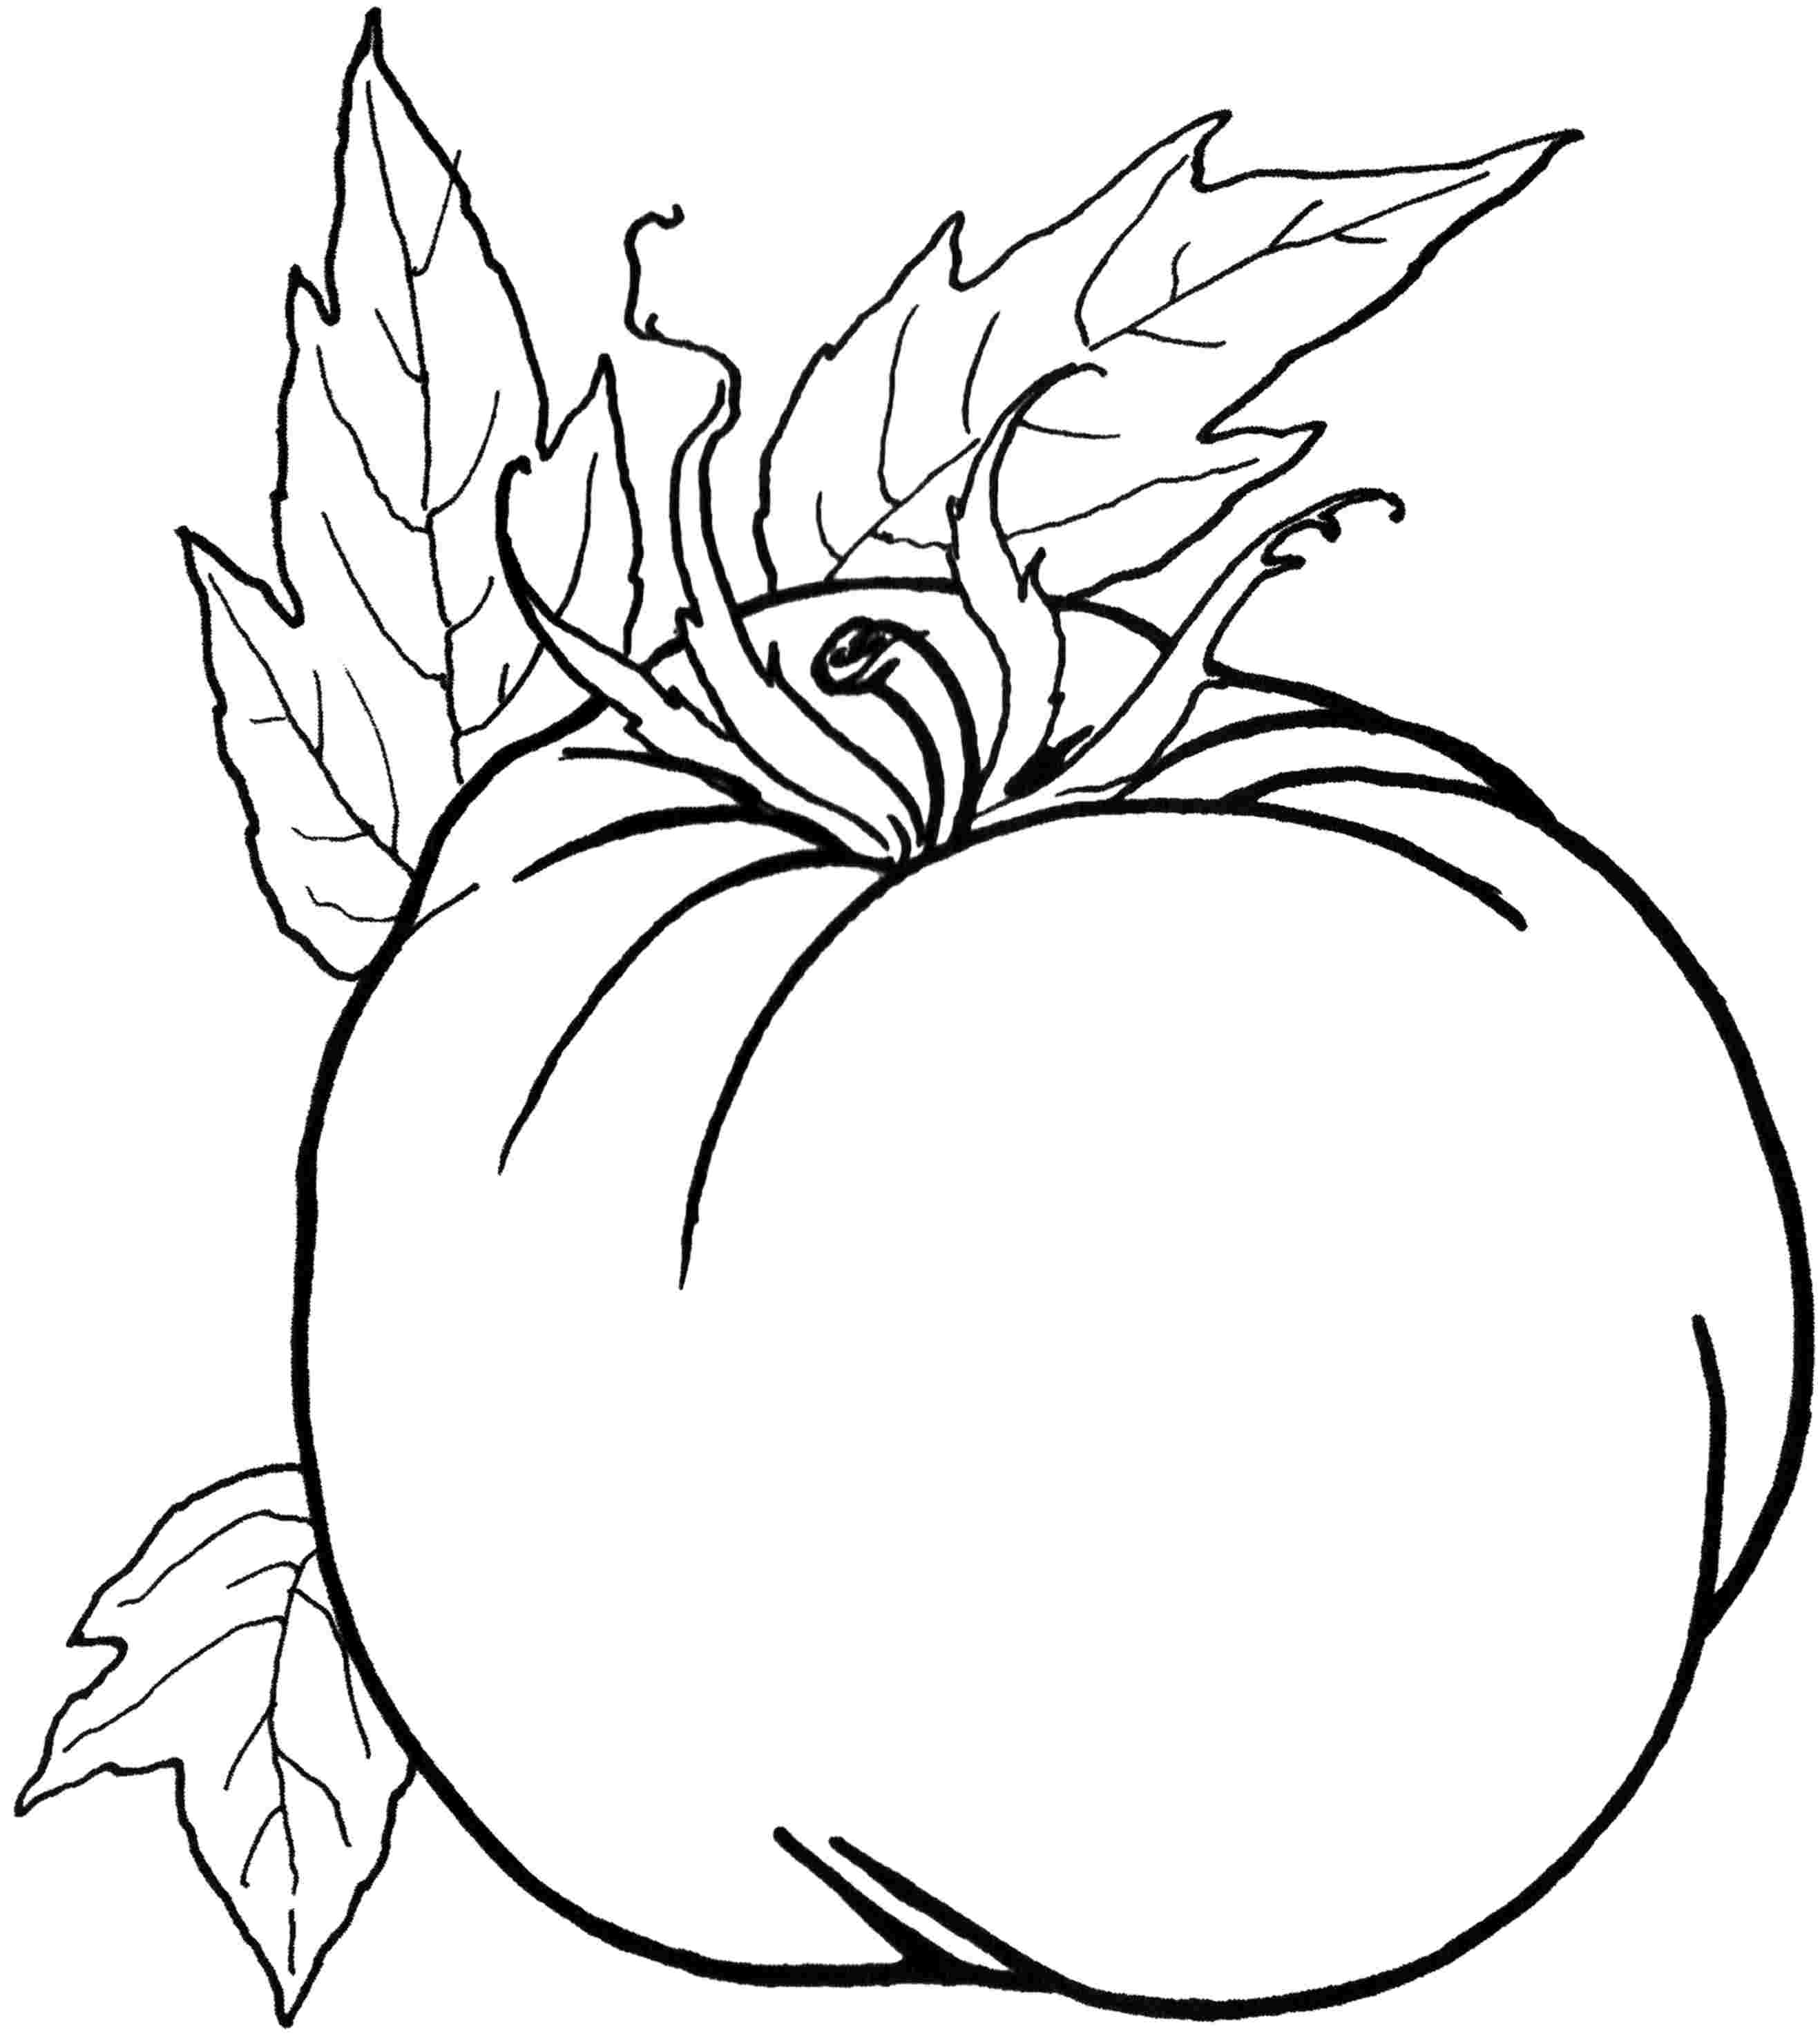 colouring pages of vegetables vegetables drawing for kids at paintingvalleycom colouring pages of vegetables